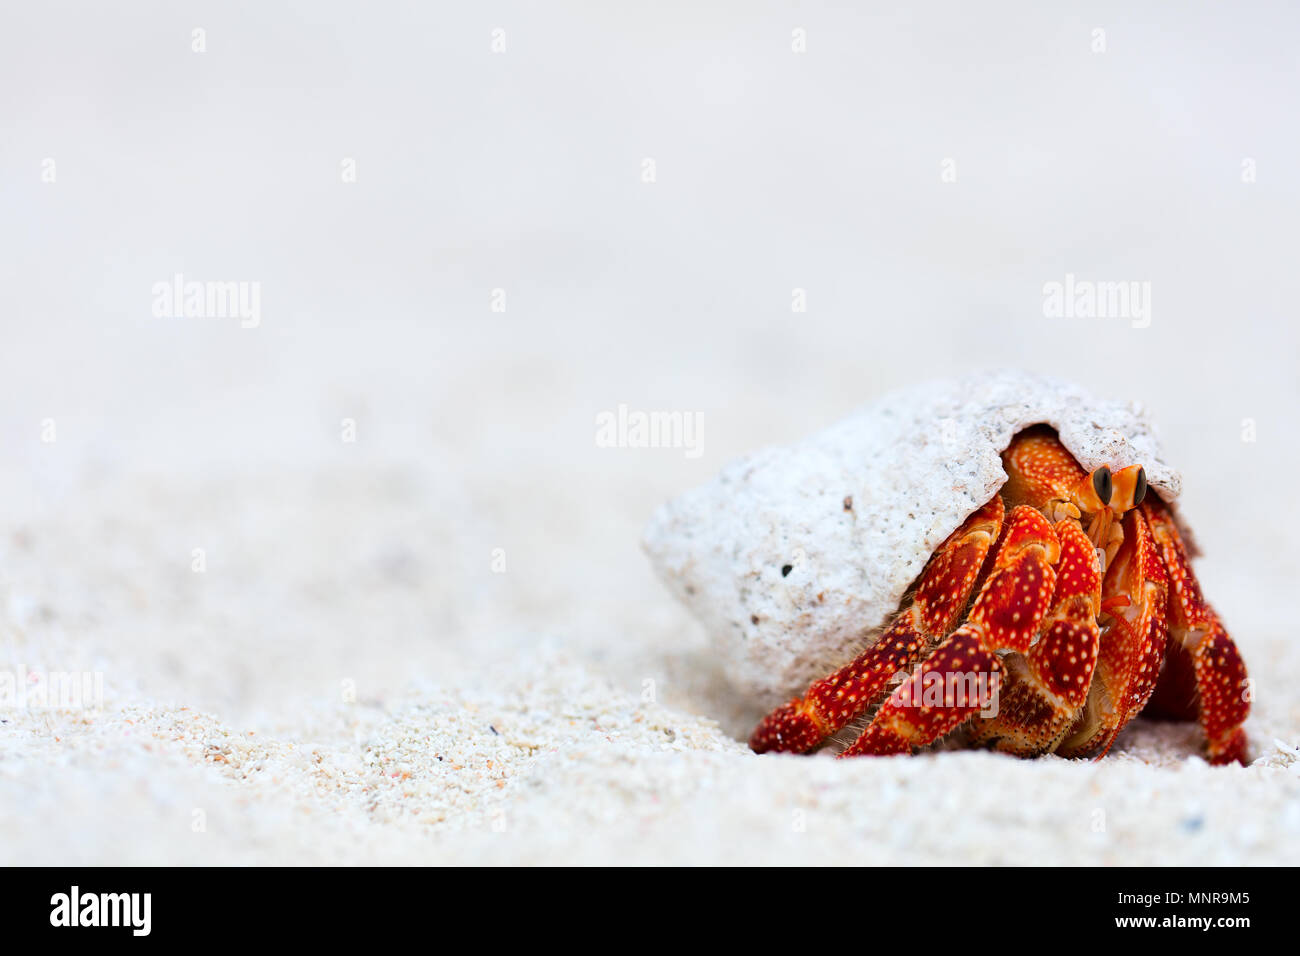 Hermit crab on white sand beach with copy space great for ad - Stock Image